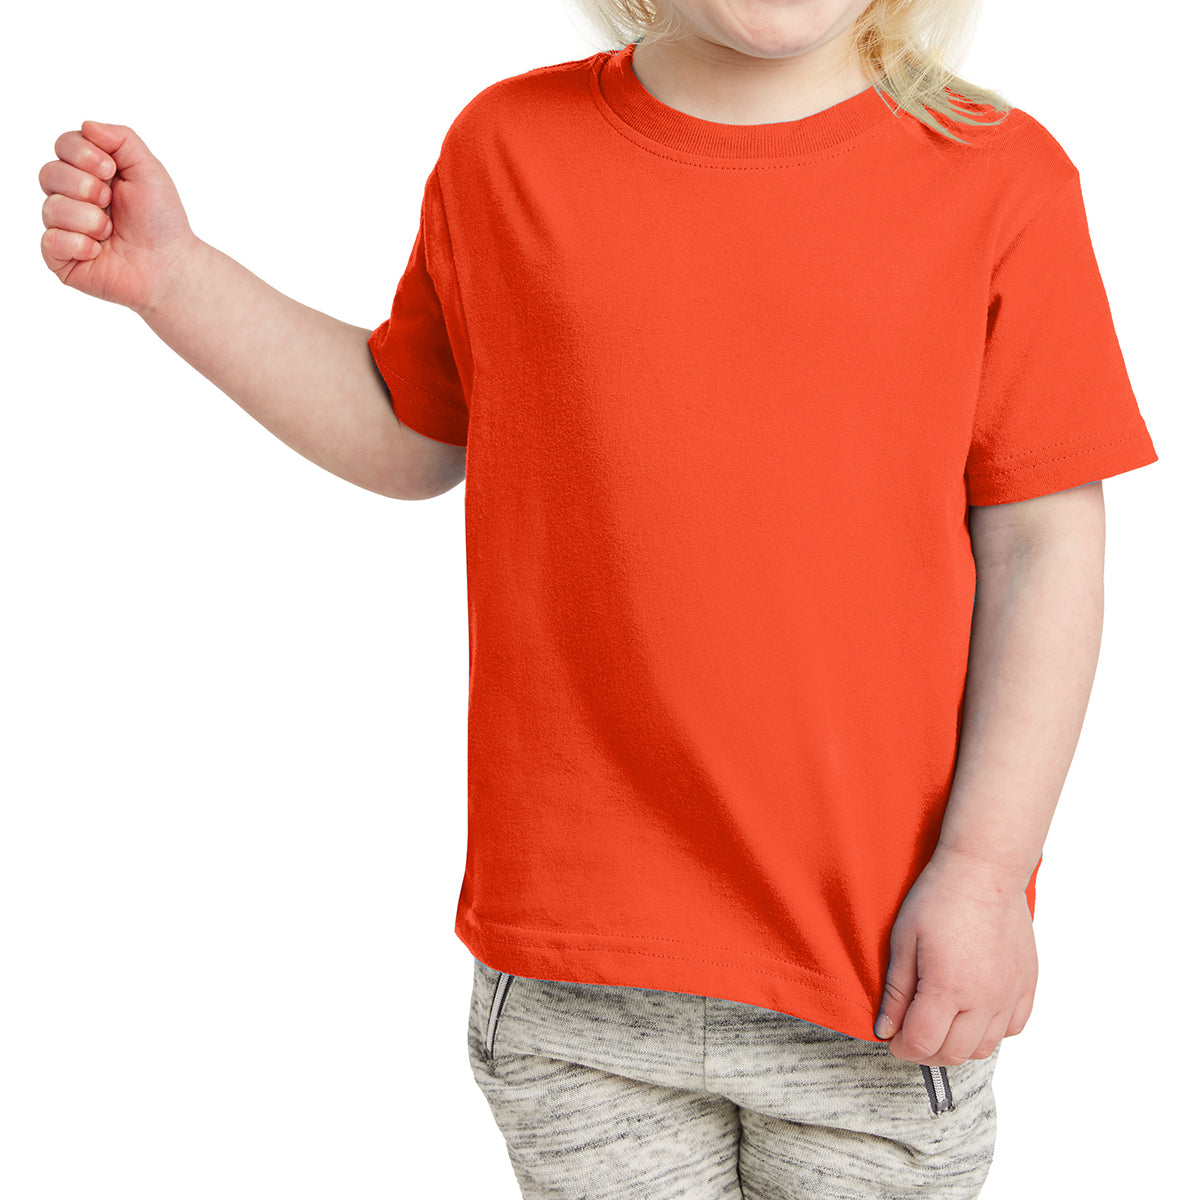 Toddler Fine Jersey Tee - Orange